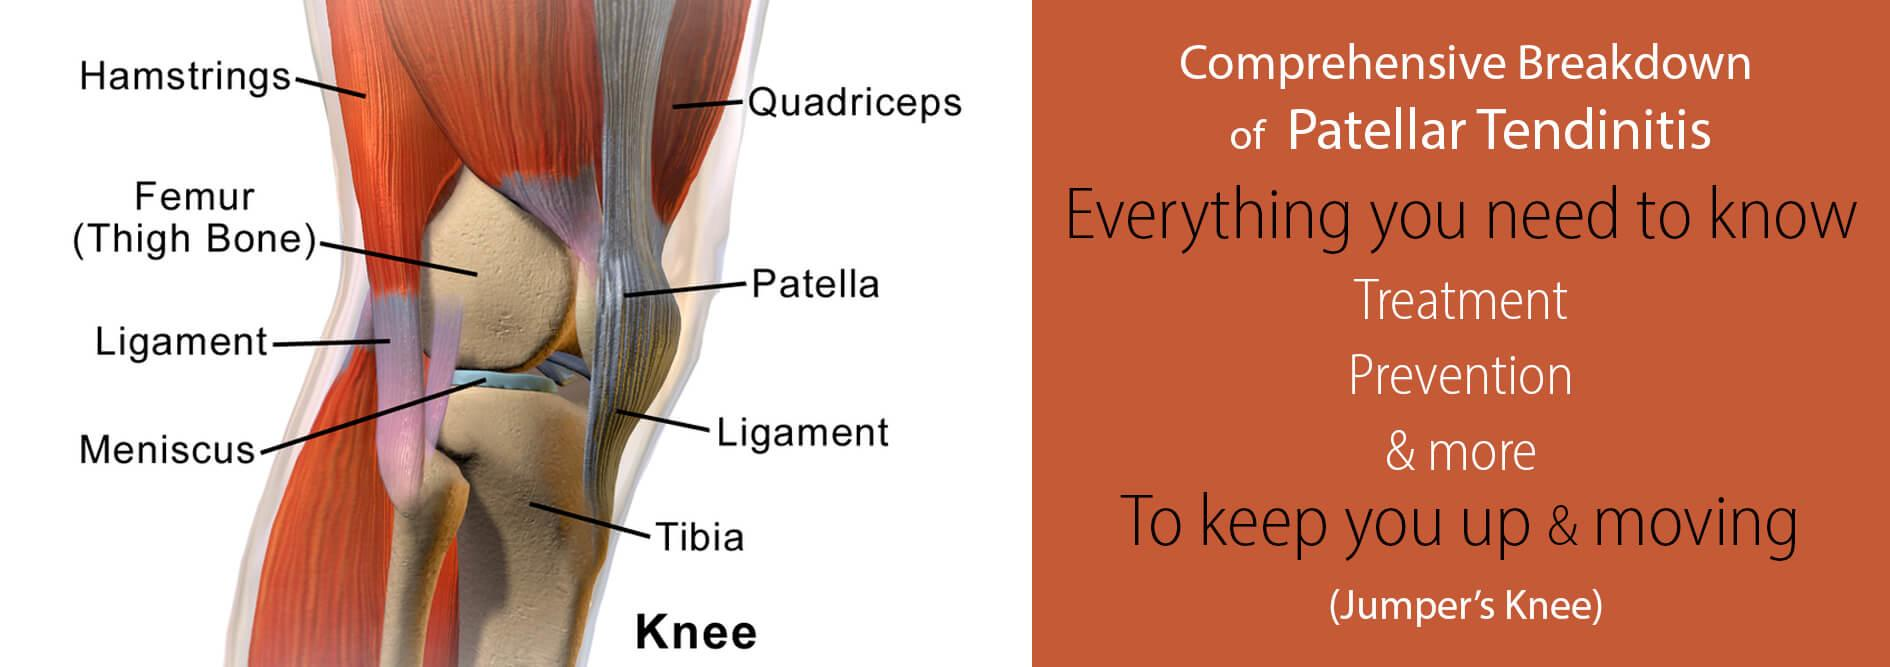 Patellar-tendinitis-everything-you-need-to-know